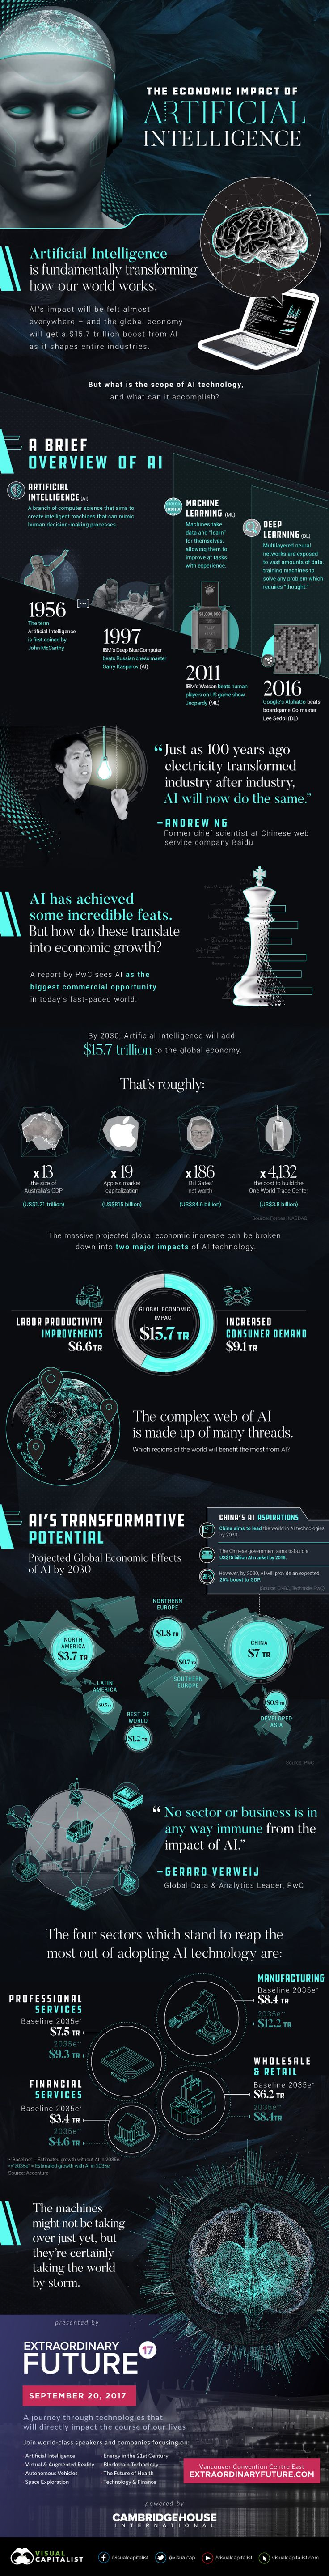 Infographic AI effect on economy - Business Insider